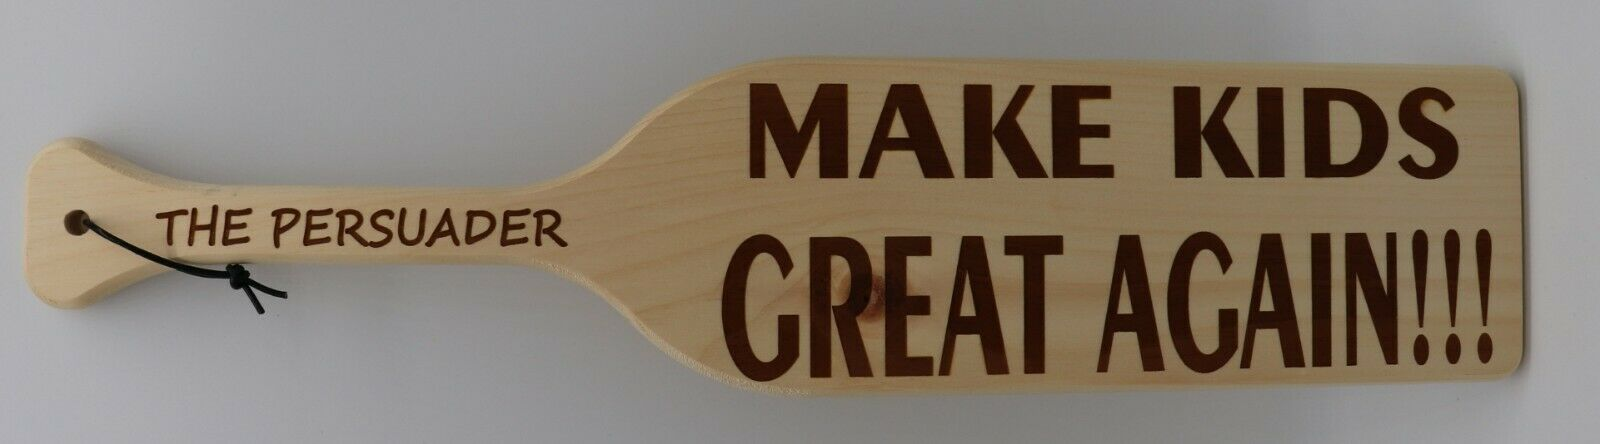 LASER ENGRAVED SPANKING PADDLE THE BOARD OF EDUCATION PARENTAL CONTROL NEW